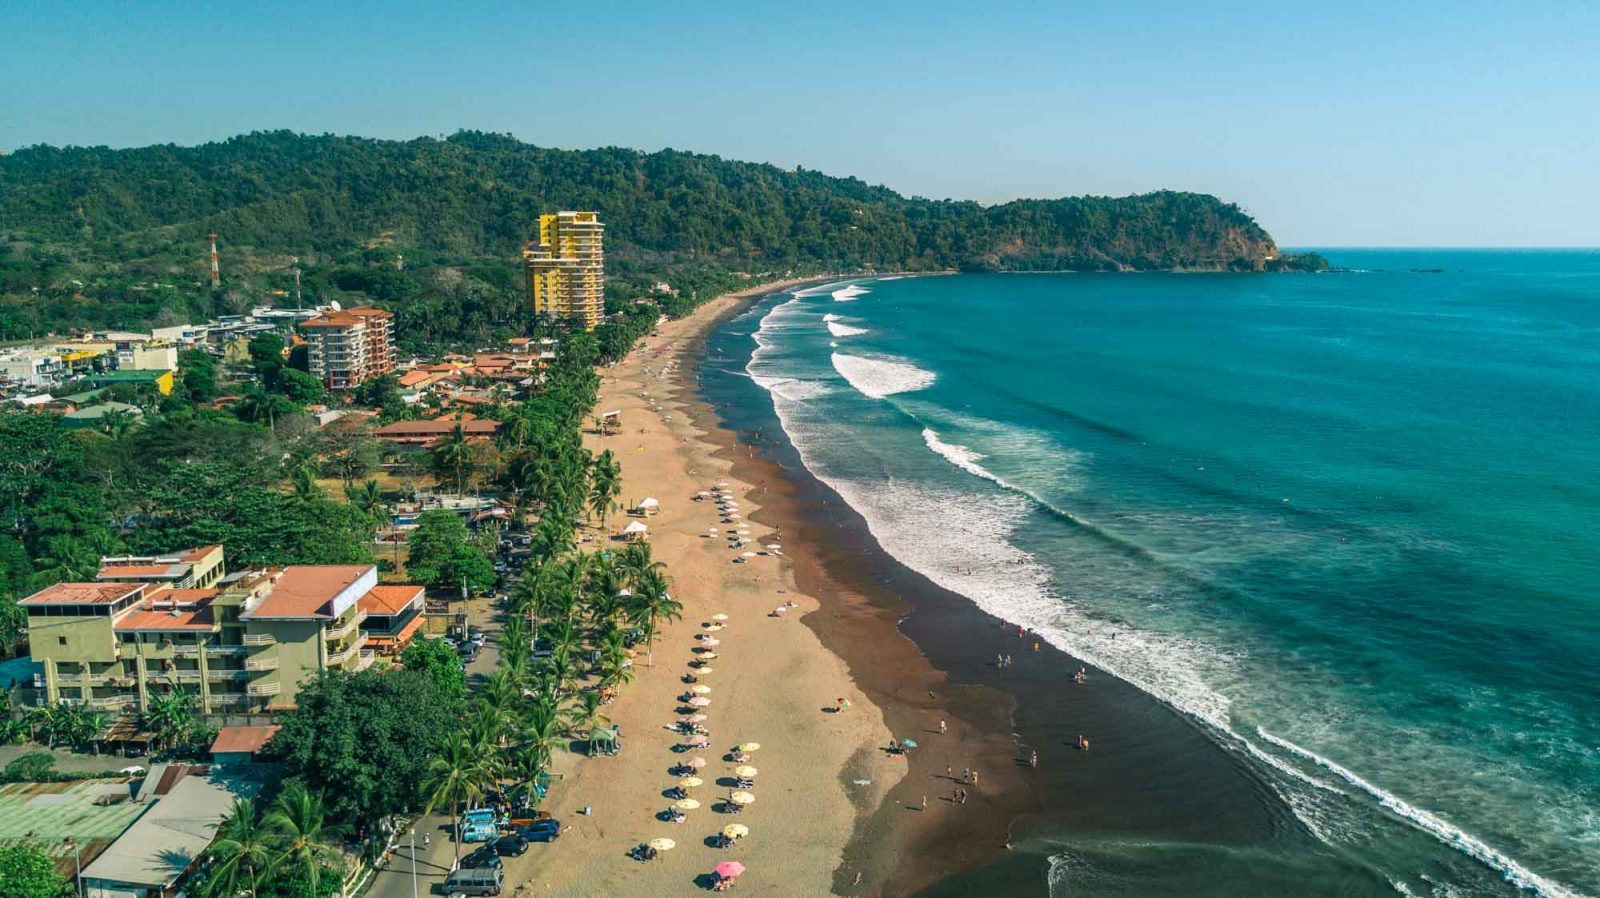 costa rica backpacking: Things To Do in Jaco Costa Rica